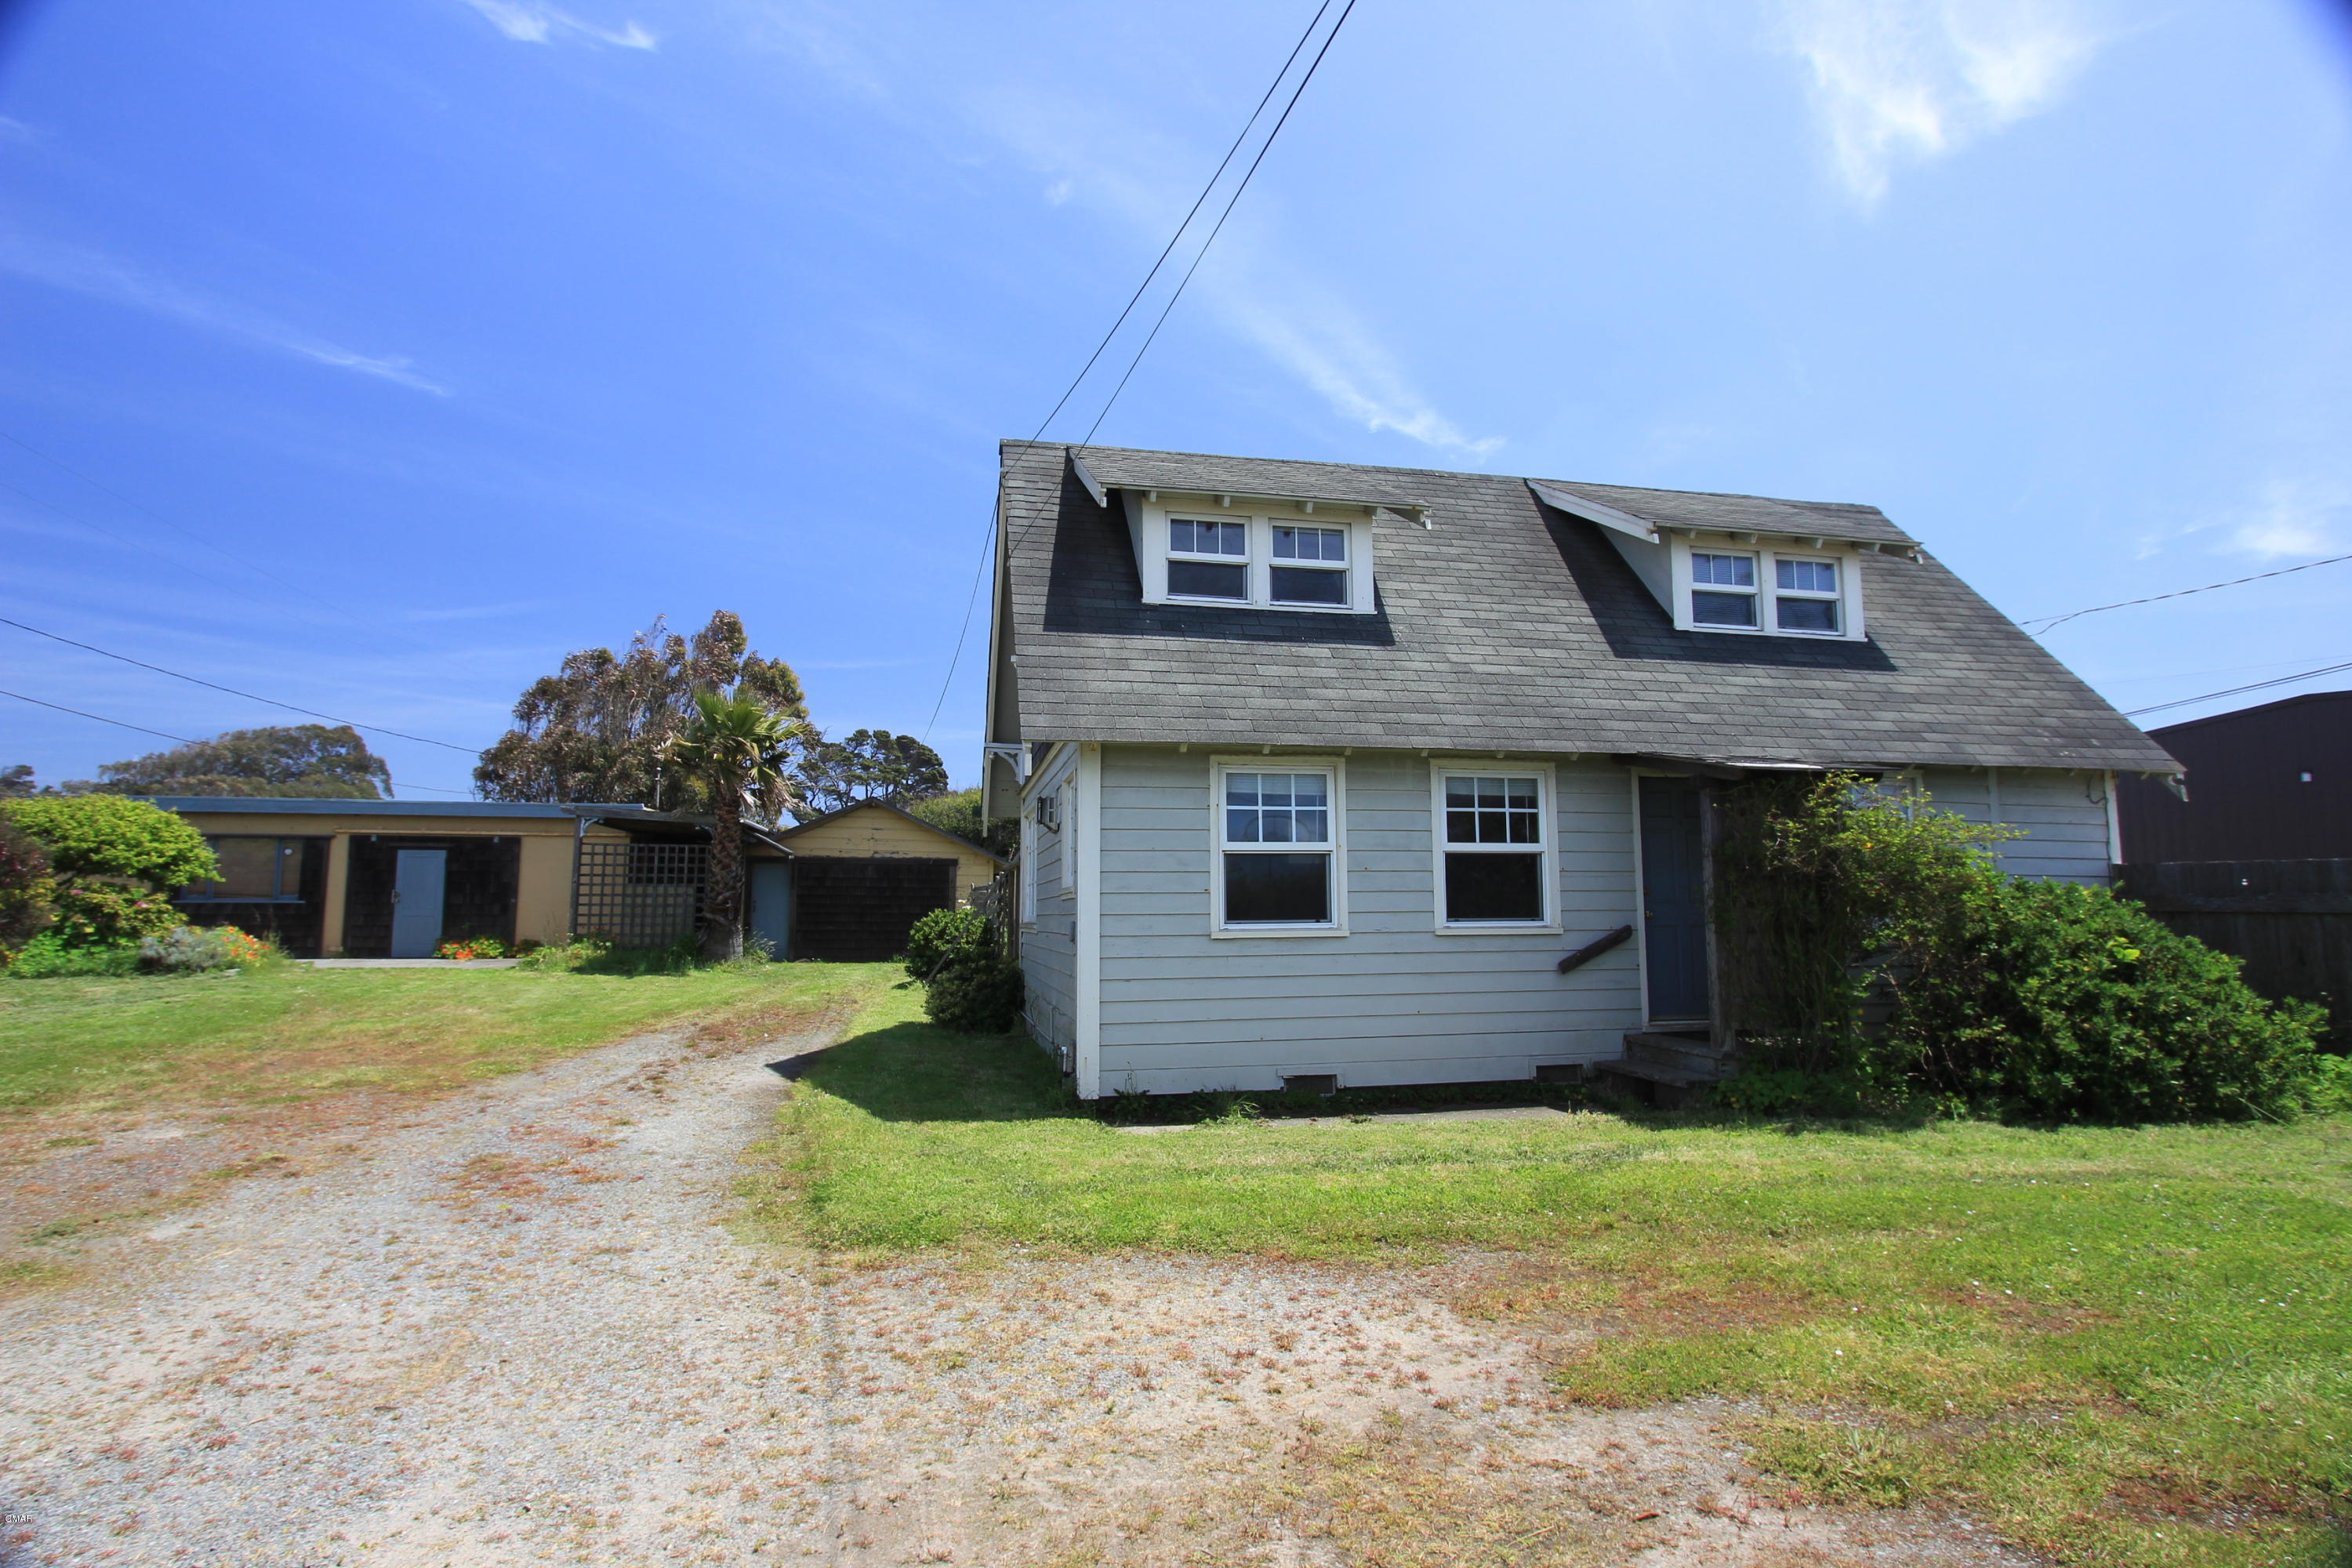 This is the ideal property for the sole proprietor wanting to live close to the shop. Cozy one bedroom home with detached, one car garage and 1,000+ s.f shop with propane heat and 1/2 bathroom. The bungalow has a sunny loft with sweet ocean views. Propane Jotul stove in the living room is an economic and convenient heat source. Zoning of this property is ideal for living and having a light industrial business with Fort Bragg North Main Street Frontage. Check with City Planning for your specific purposes.